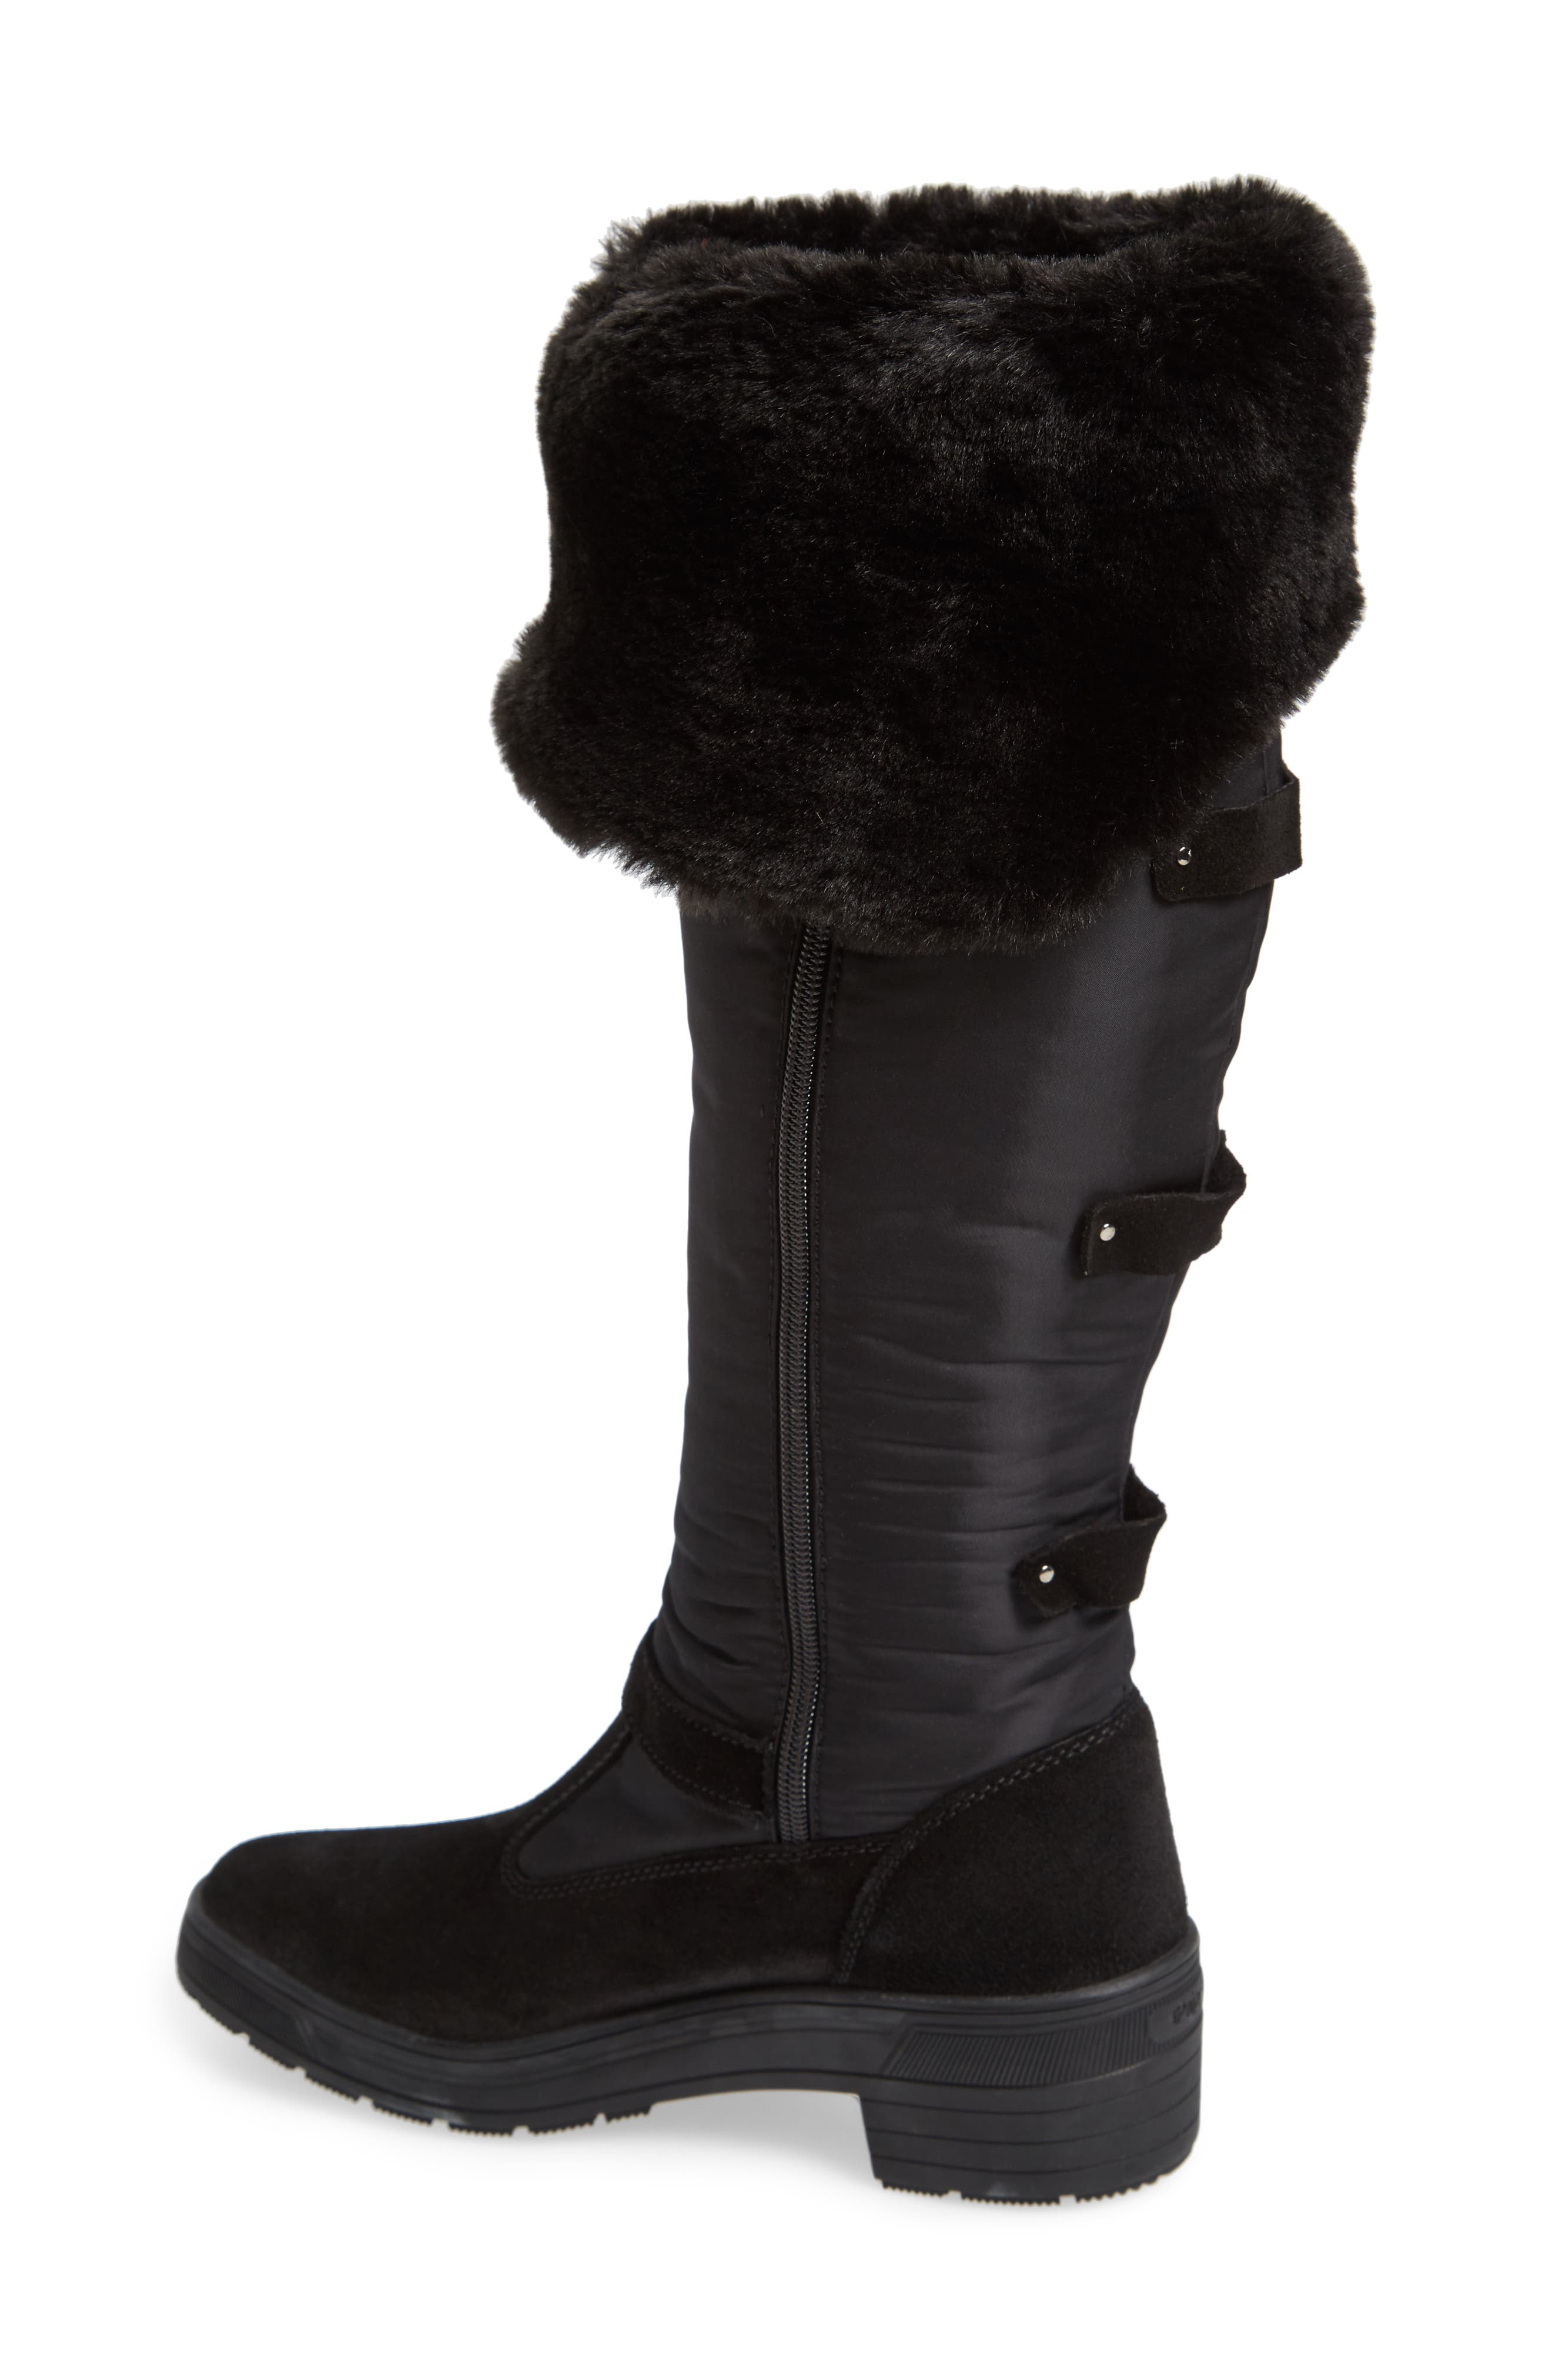 Norah Waterproof Boot with Faux Fur Cuff,                             Alternate thumbnail 2, color,